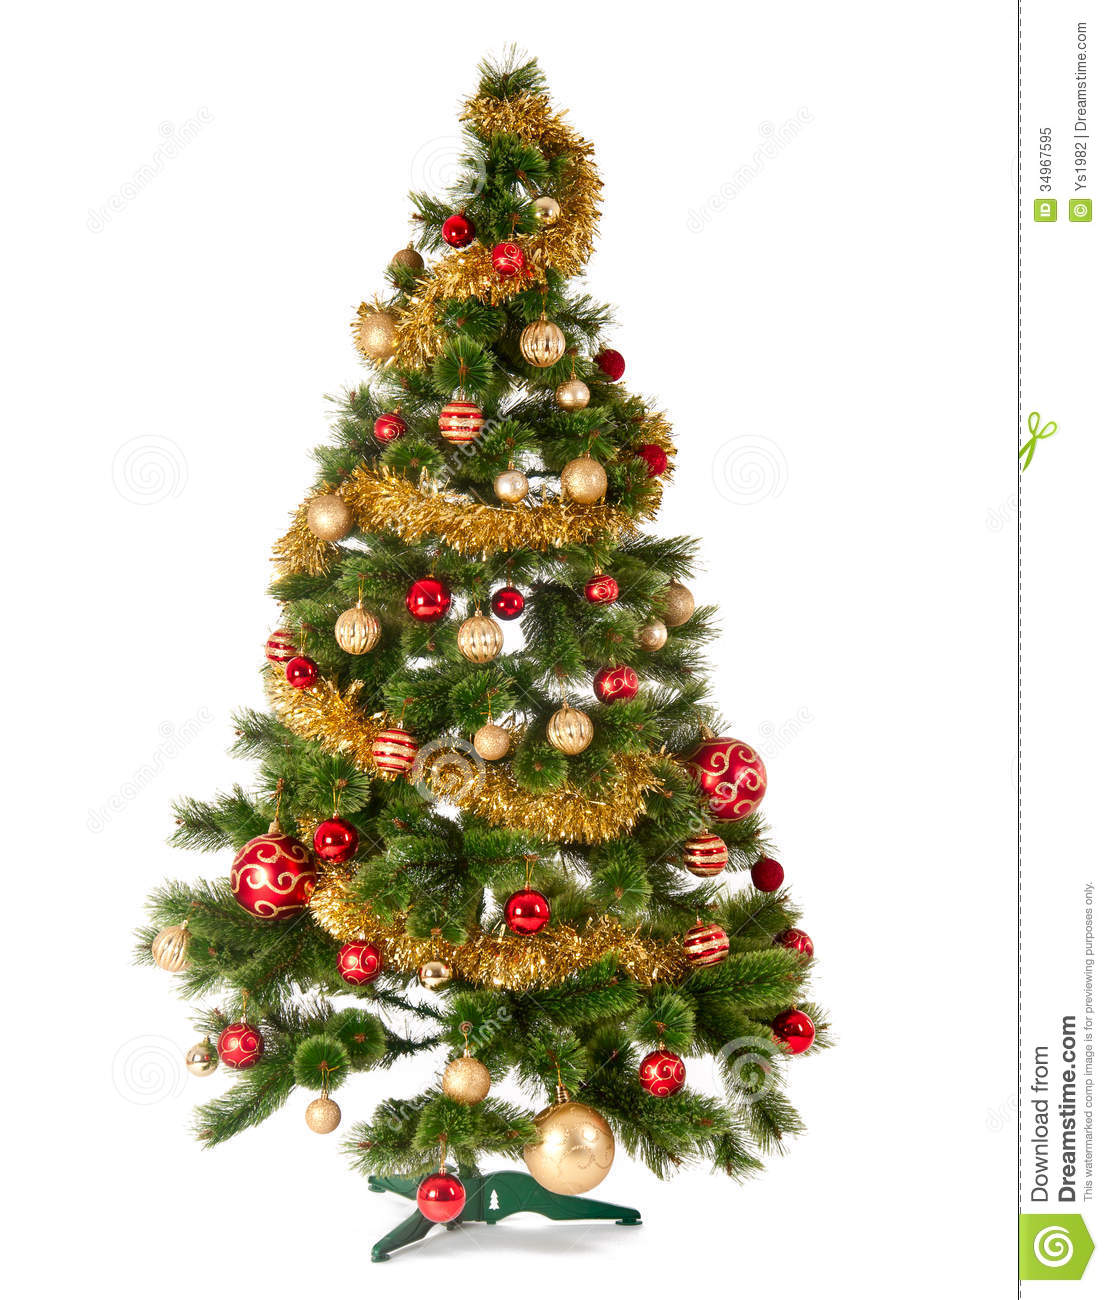 Decorated Christmas Tree Images : Decorated christmas tree on white background stock image